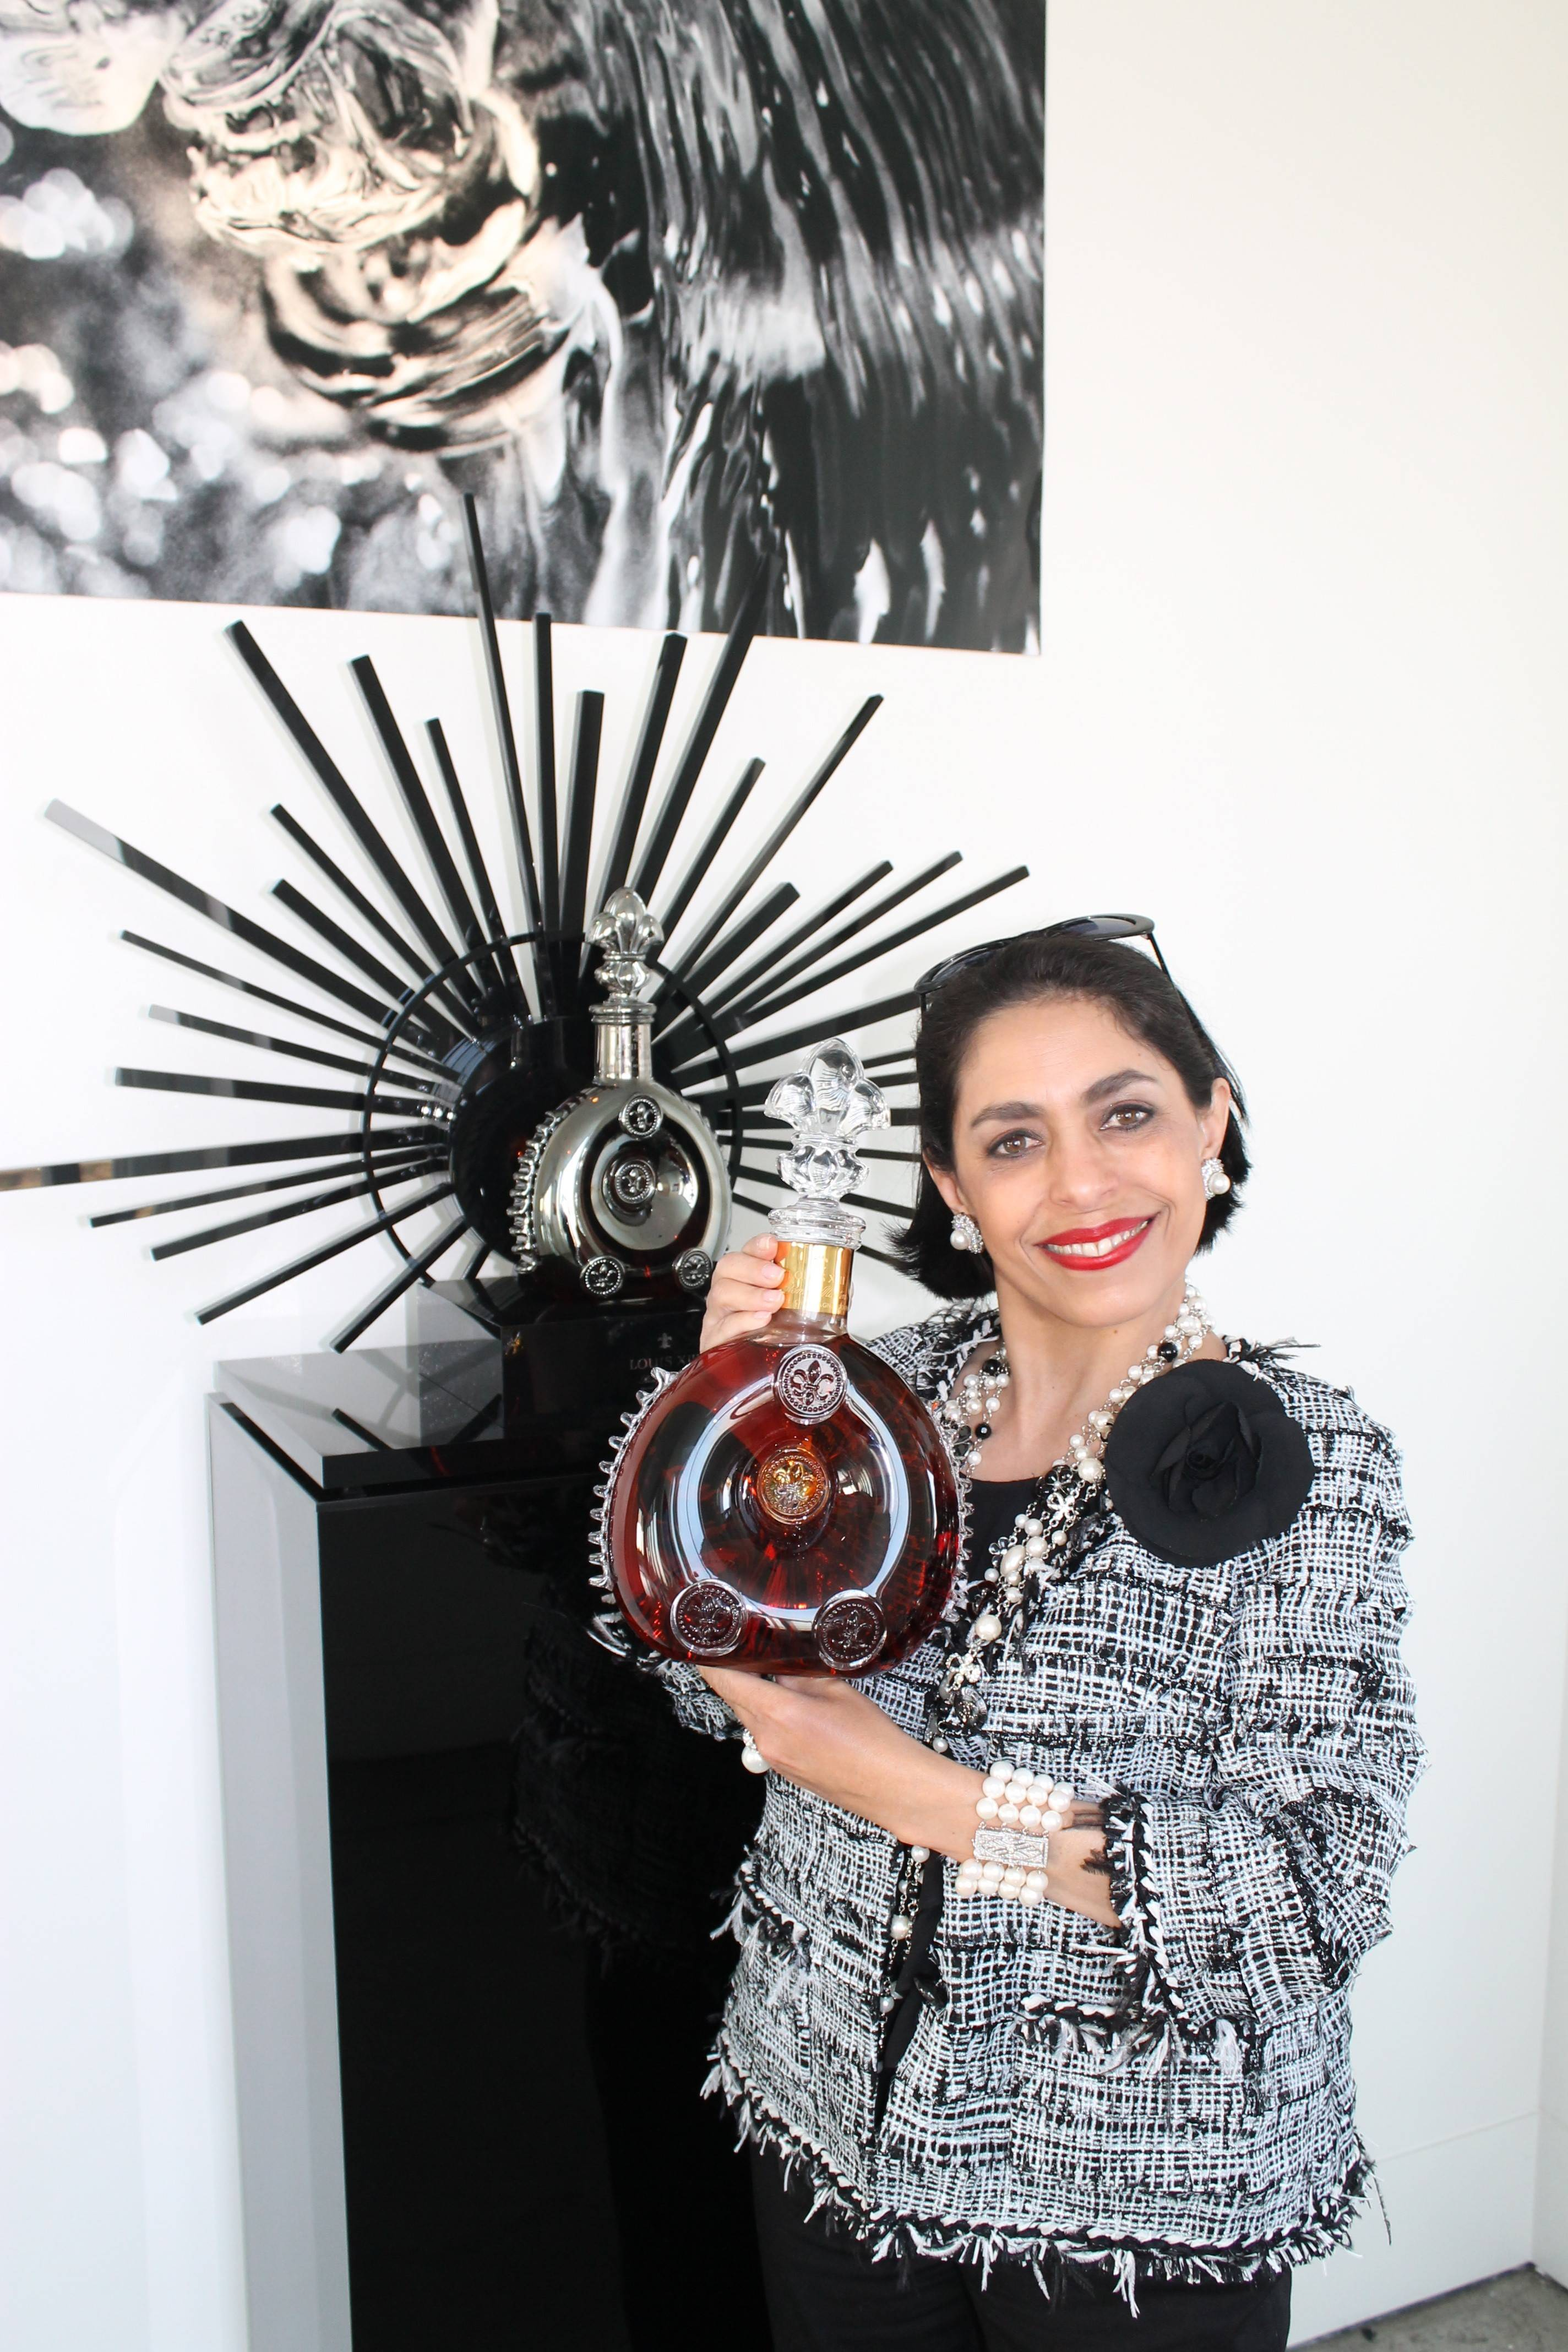 Haute Living Magazine Los Angeles & Chong Hing Jewelers Presentation of the Remy Martin Louis XIII Experience at a Mansion in the Hollywood Hills.